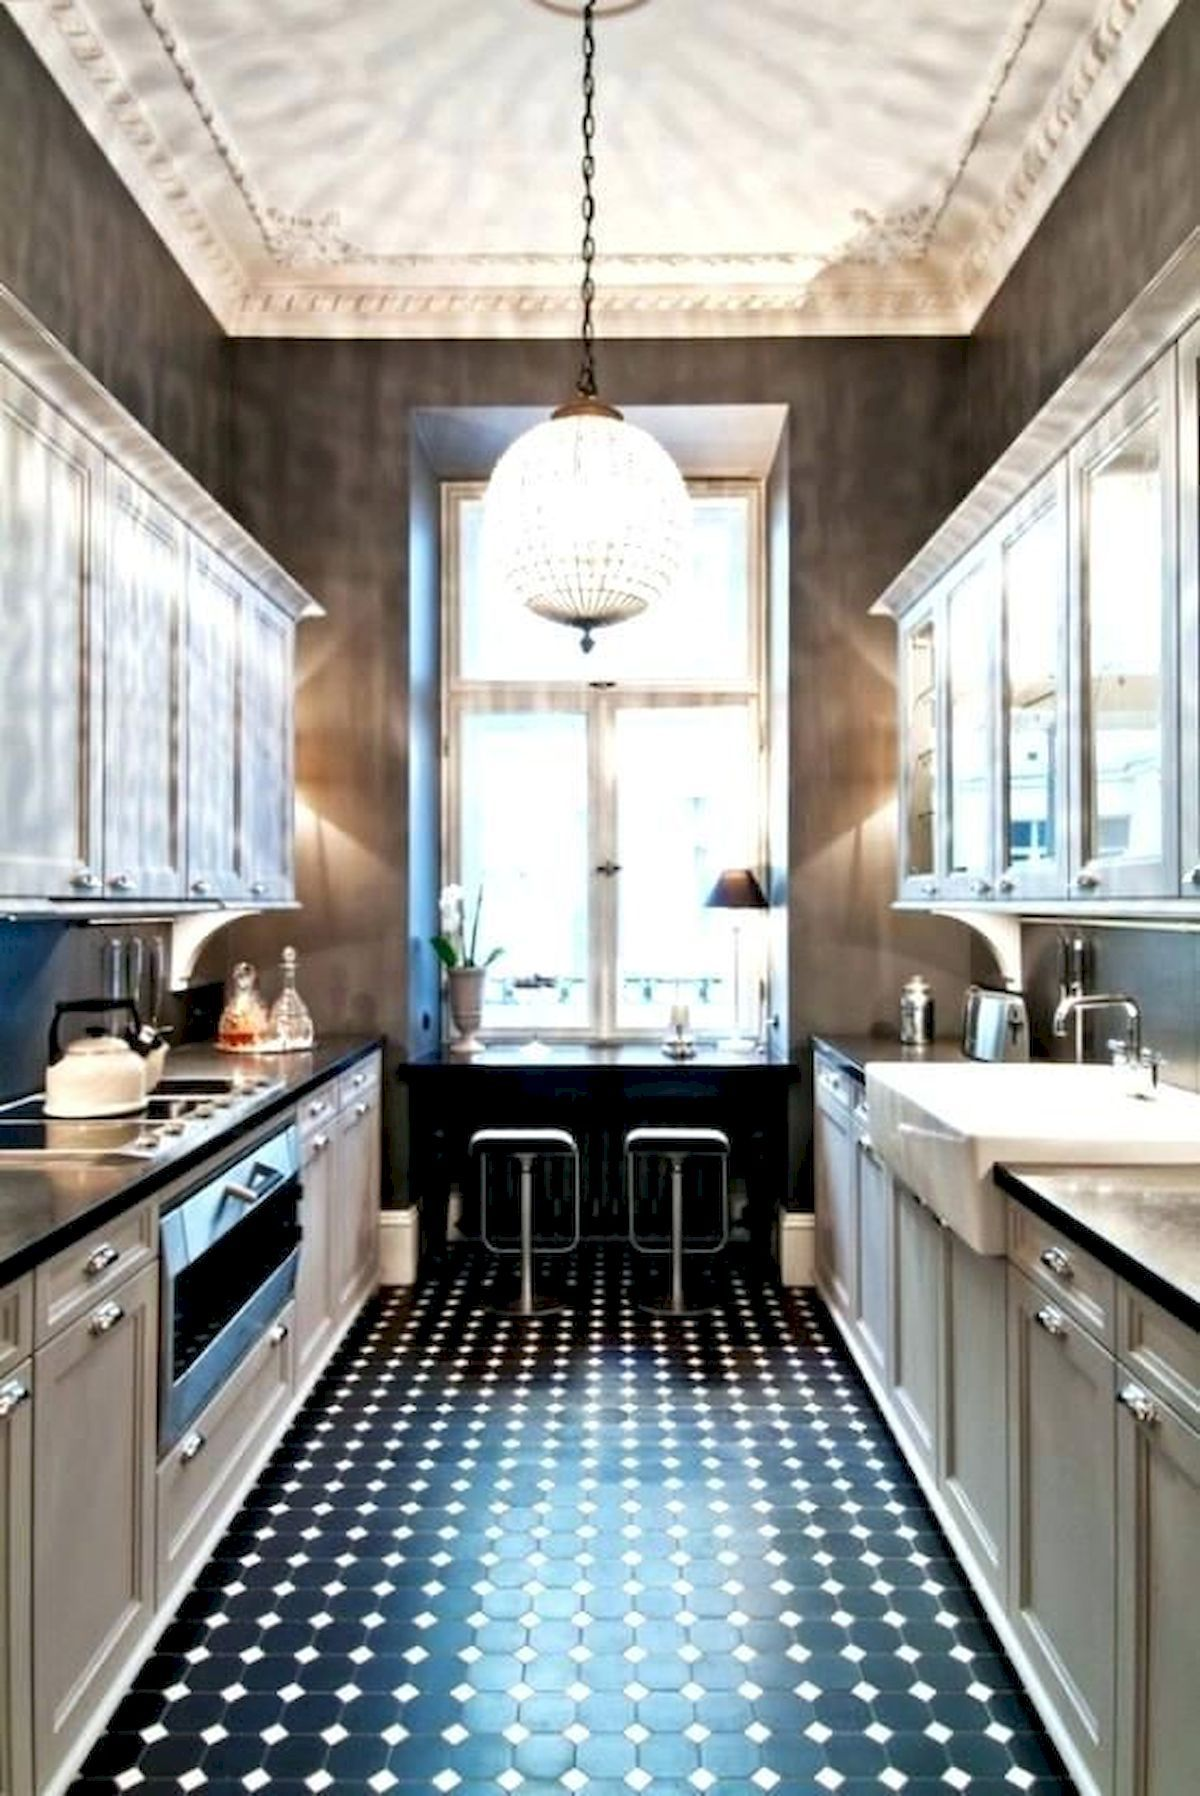 42 Awesome Tile Flooring Designs Ideas For Modern Kitchen in 2020 | Galley kitchen design ...